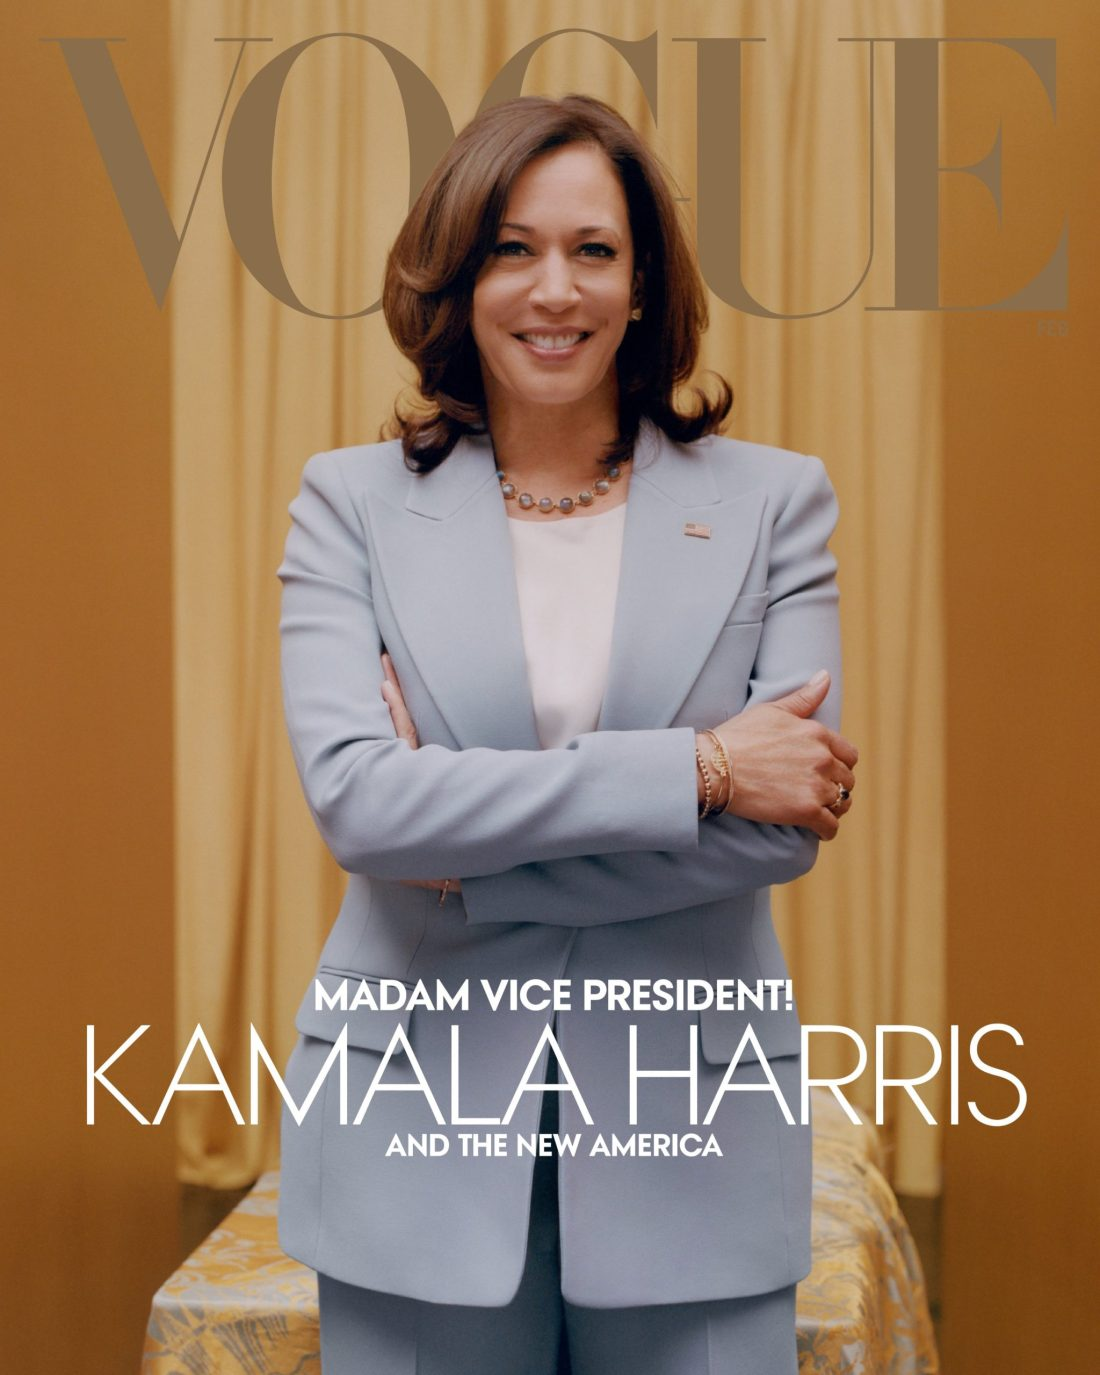 Kamala Harris Cover Shot For Vogue's February Issue Draws Controversy